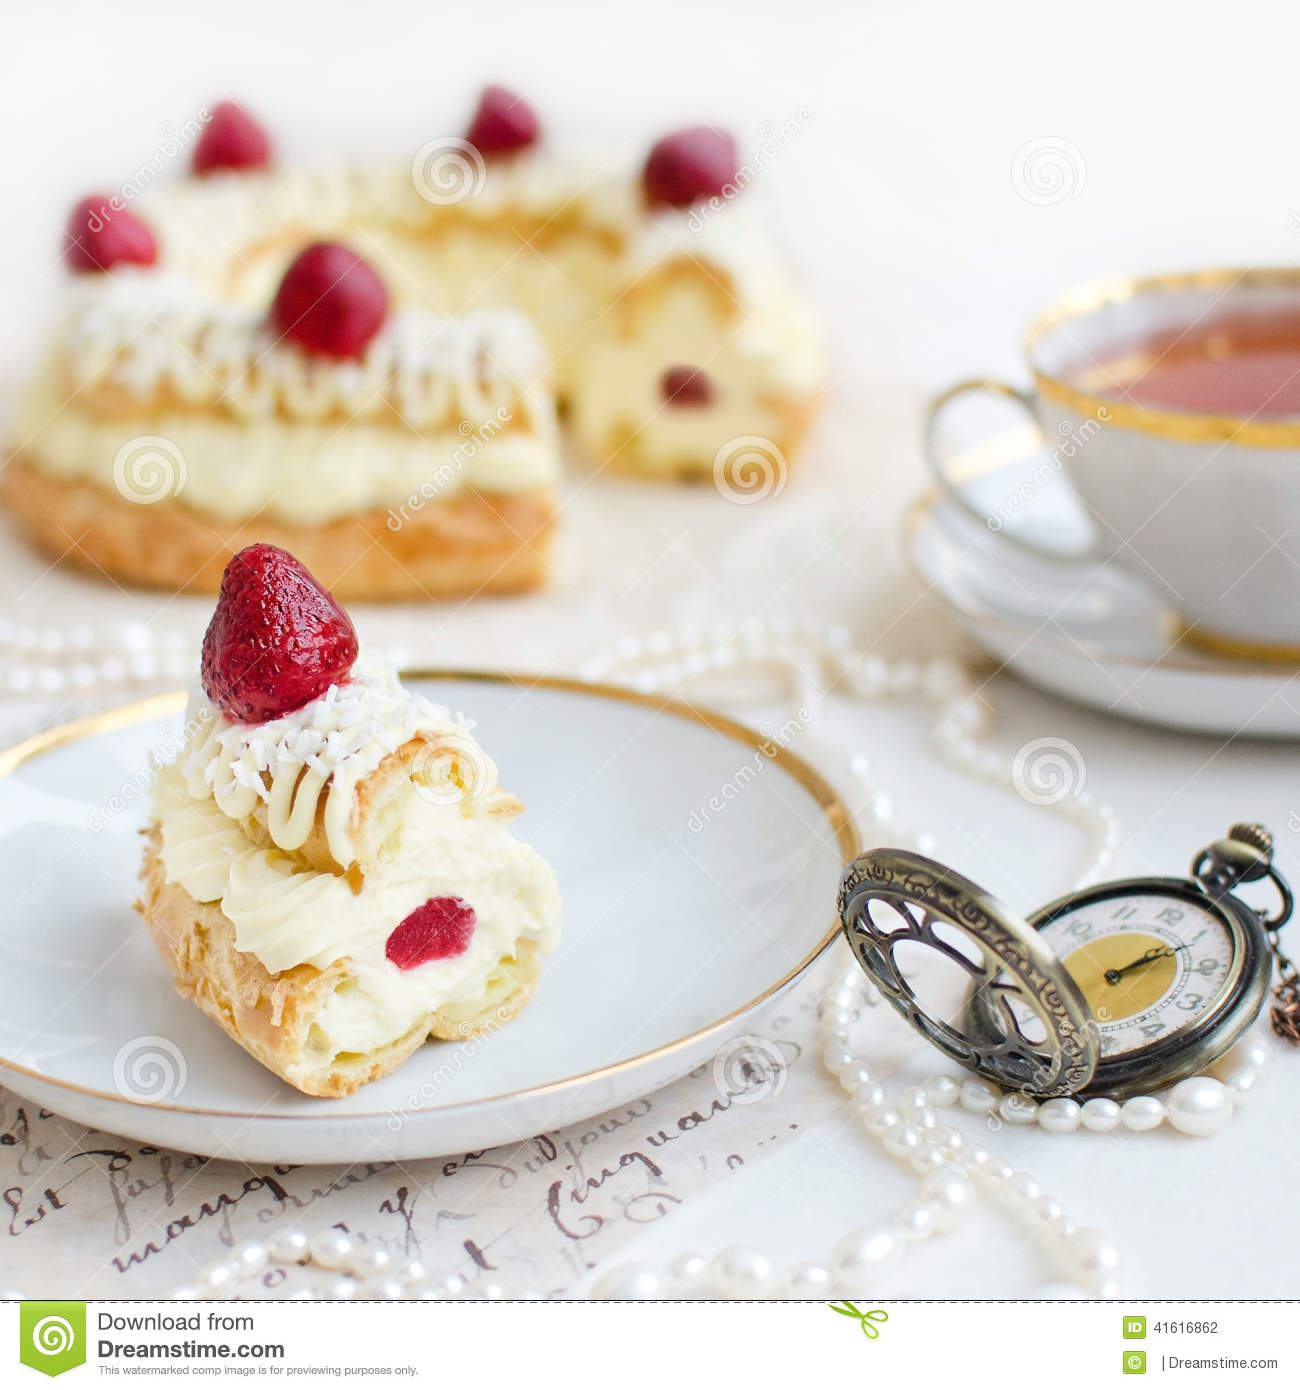 slice of paris brest cake with strawberries stock photo image 41616862. Black Bedroom Furniture Sets. Home Design Ideas